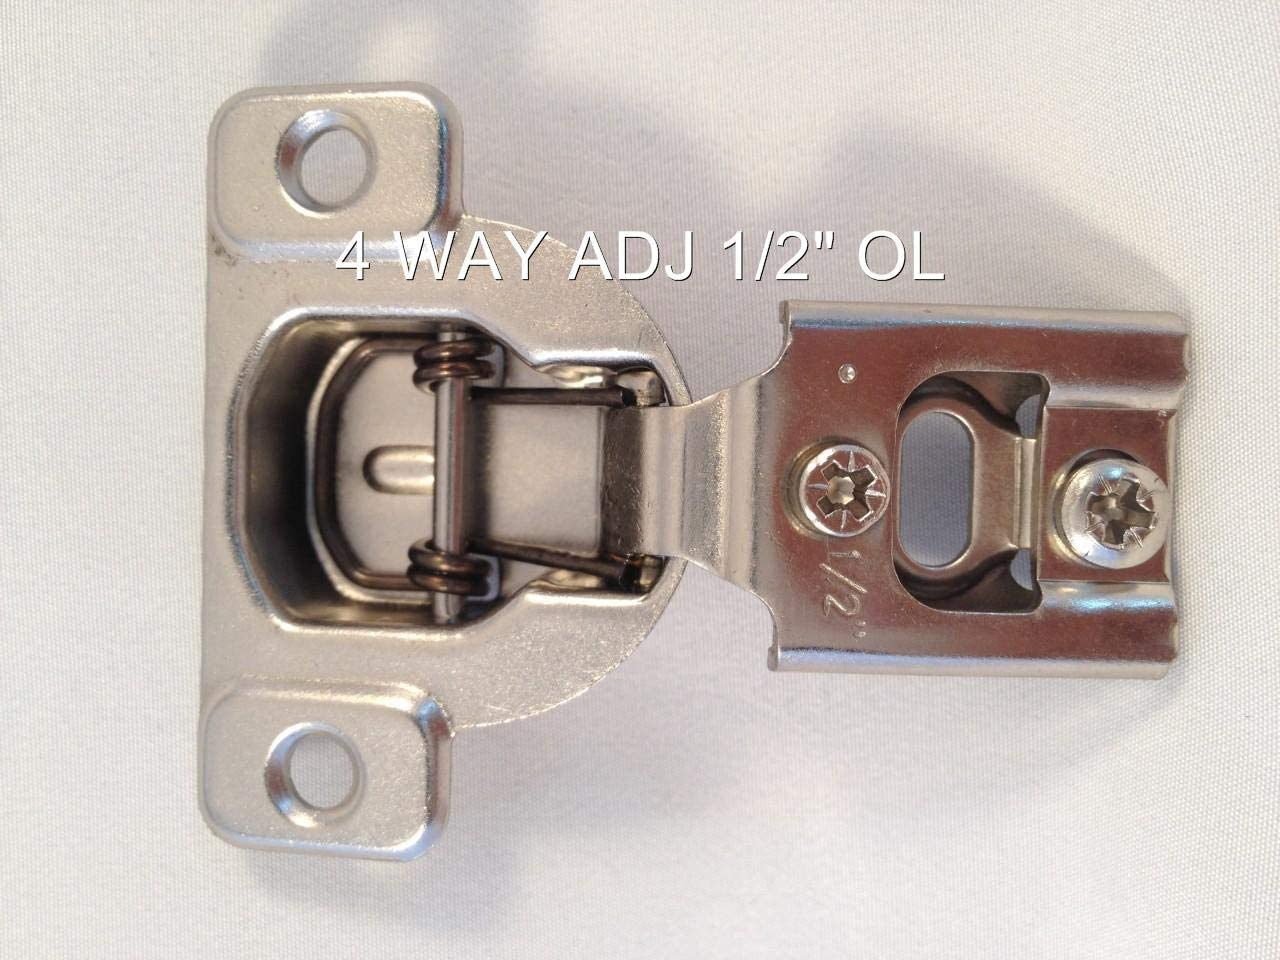 """(25 Pairs) 1/2"""" - 1-7/16"""" Compact FACE Frame Kitchen Cabinet Hinge (4 Ways 2 Cam 1/2"""" OL) 71w3ayFh8AL"""